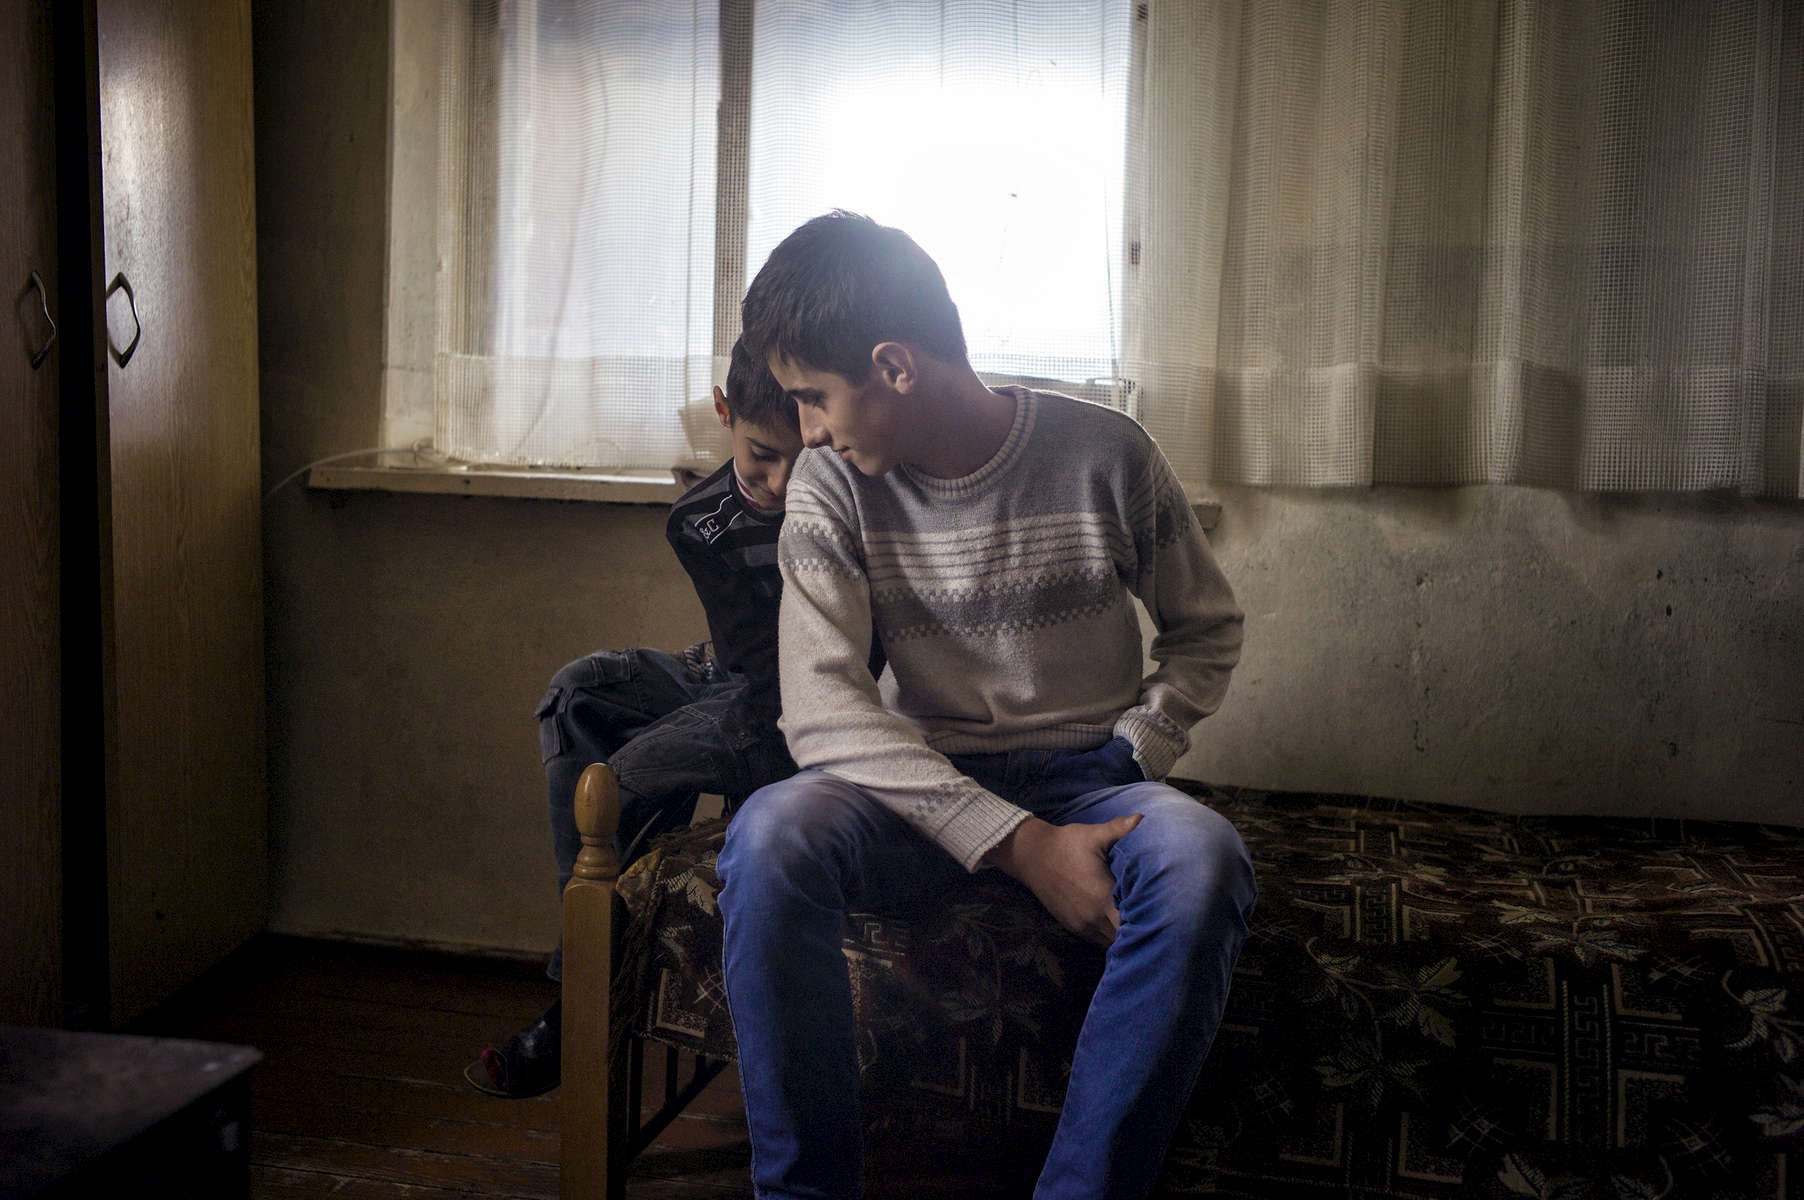 Karen Mirzoyan and his younger brother Tigran. Karen lost his hand while playing with unexploded ordnance that he had found in his backyard.